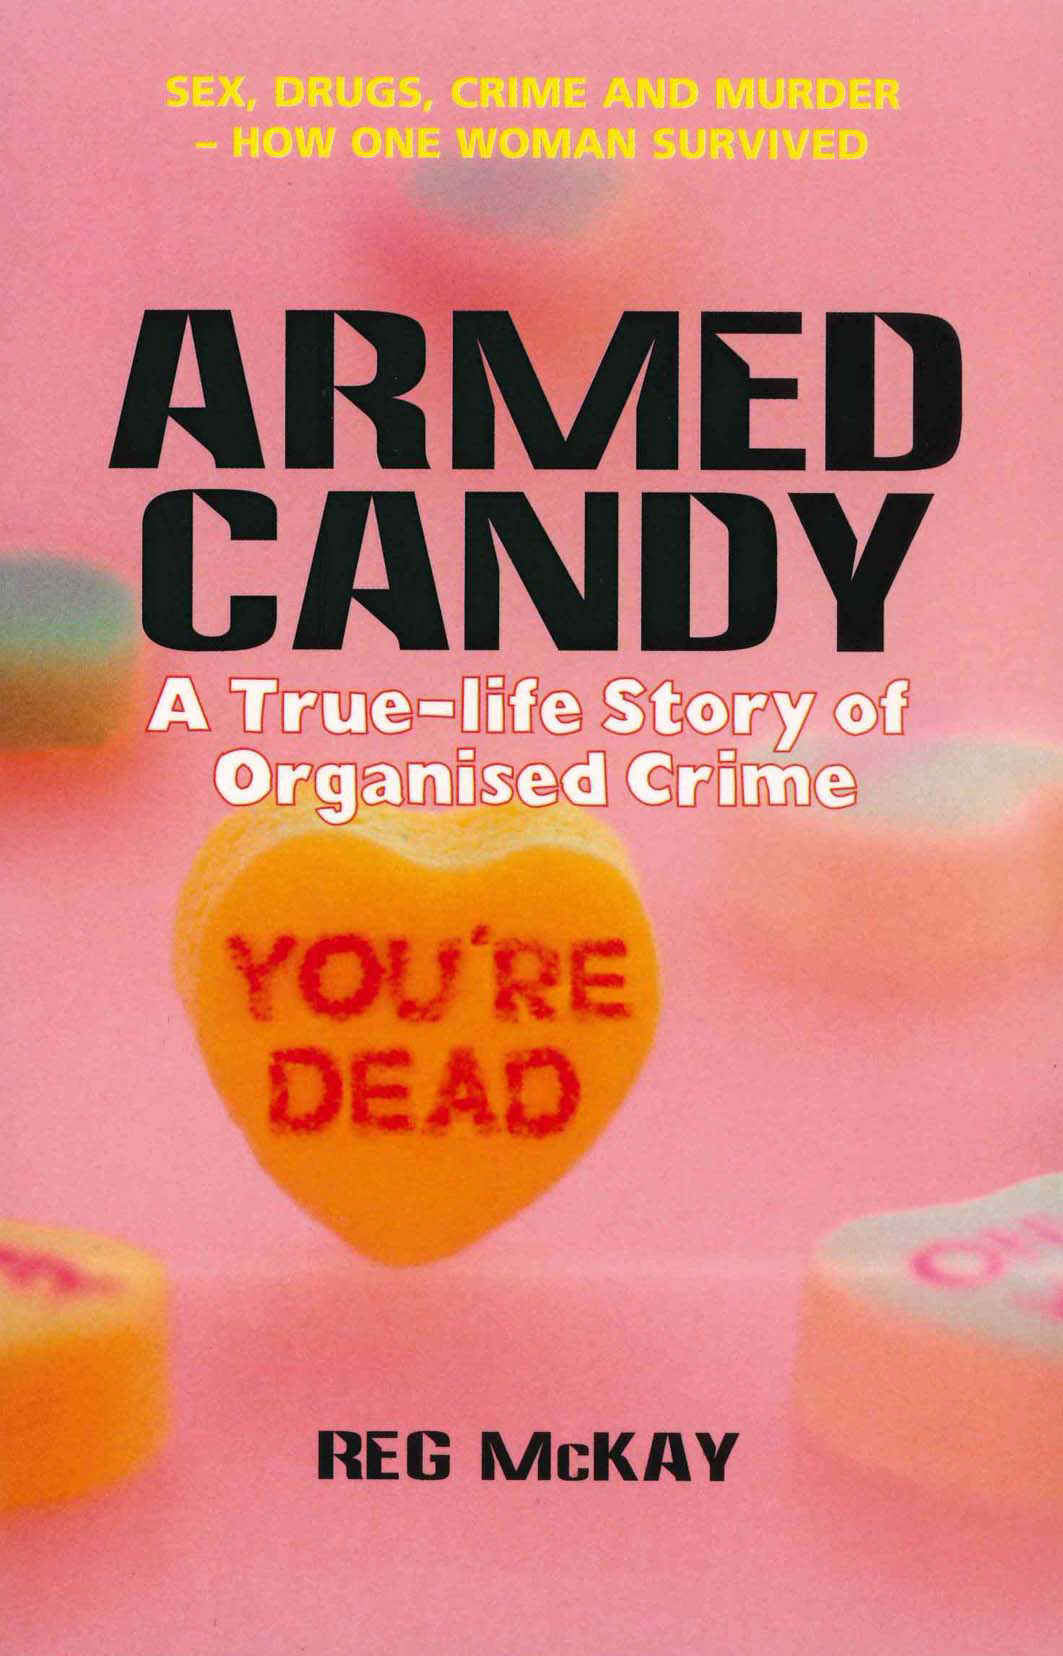 Armed Candy A True-Life Story of Organised Crime